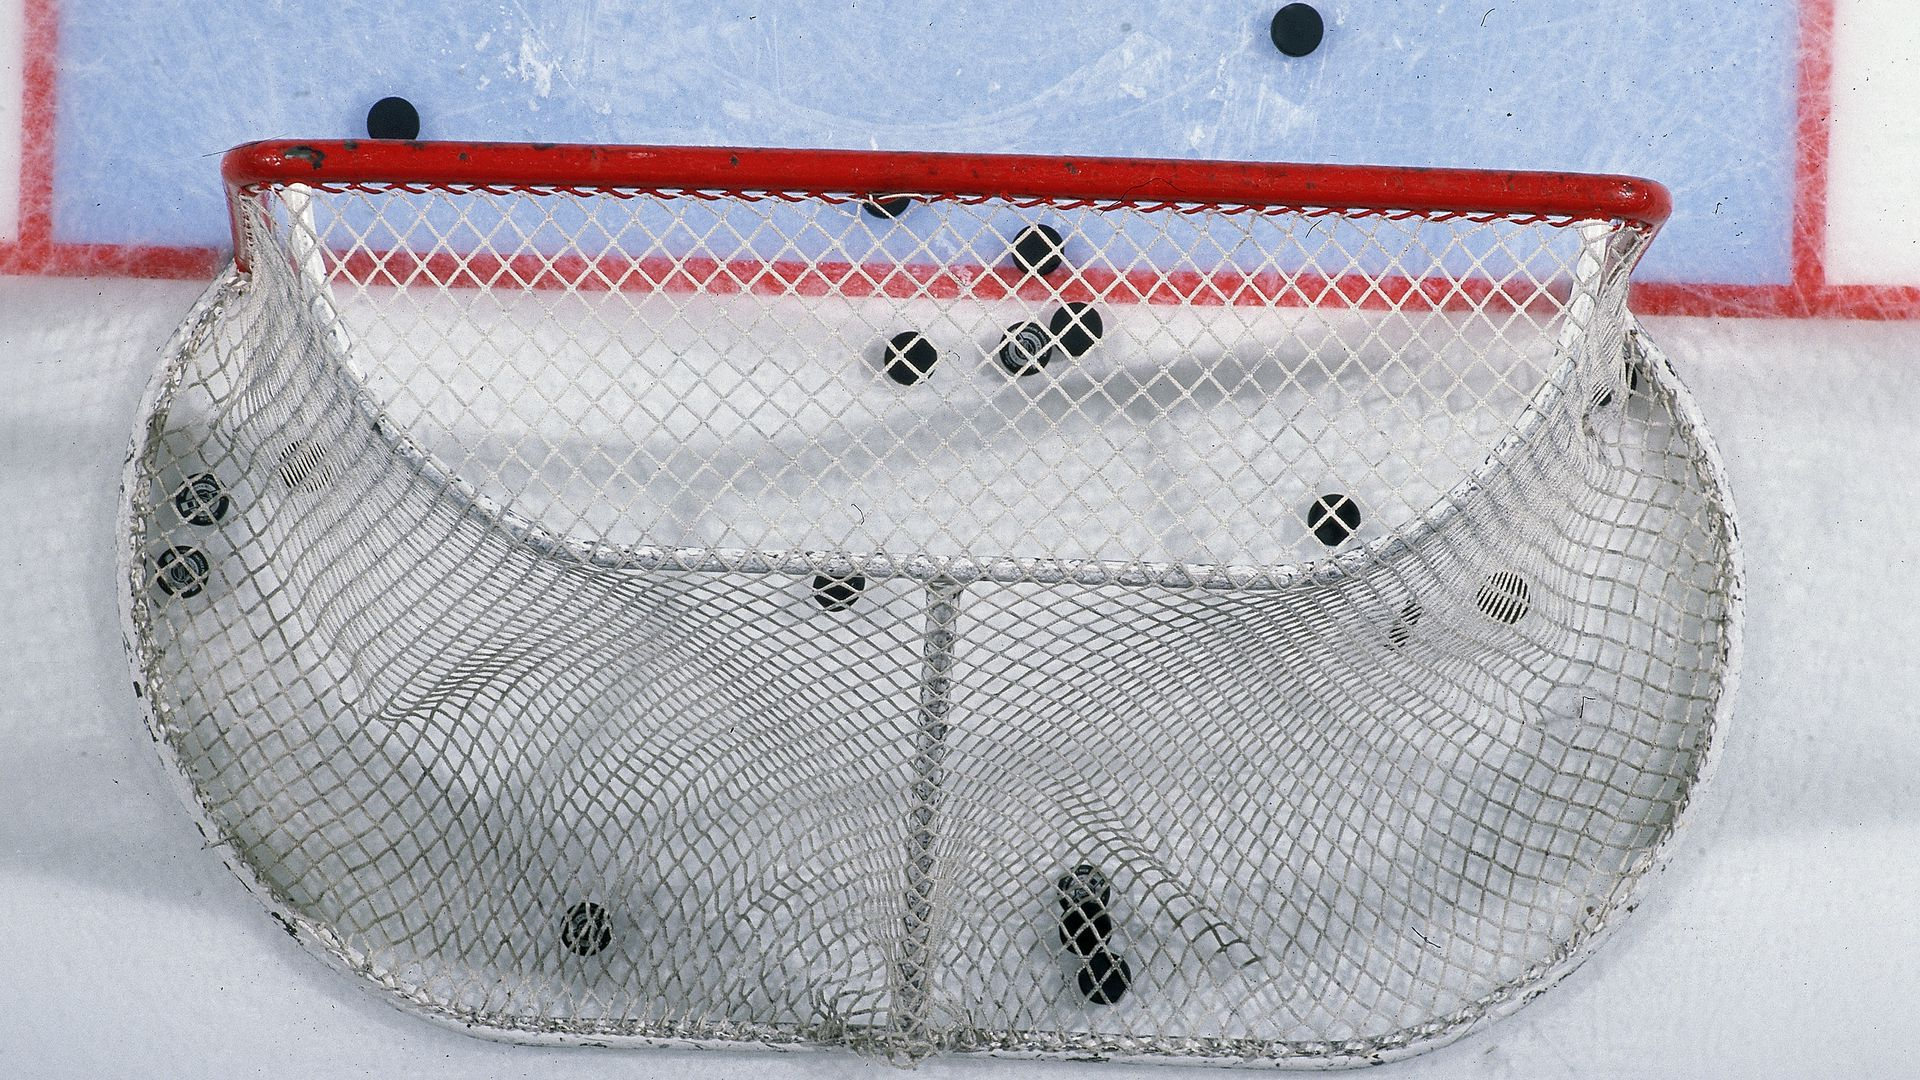 hockey goal with pucks in it